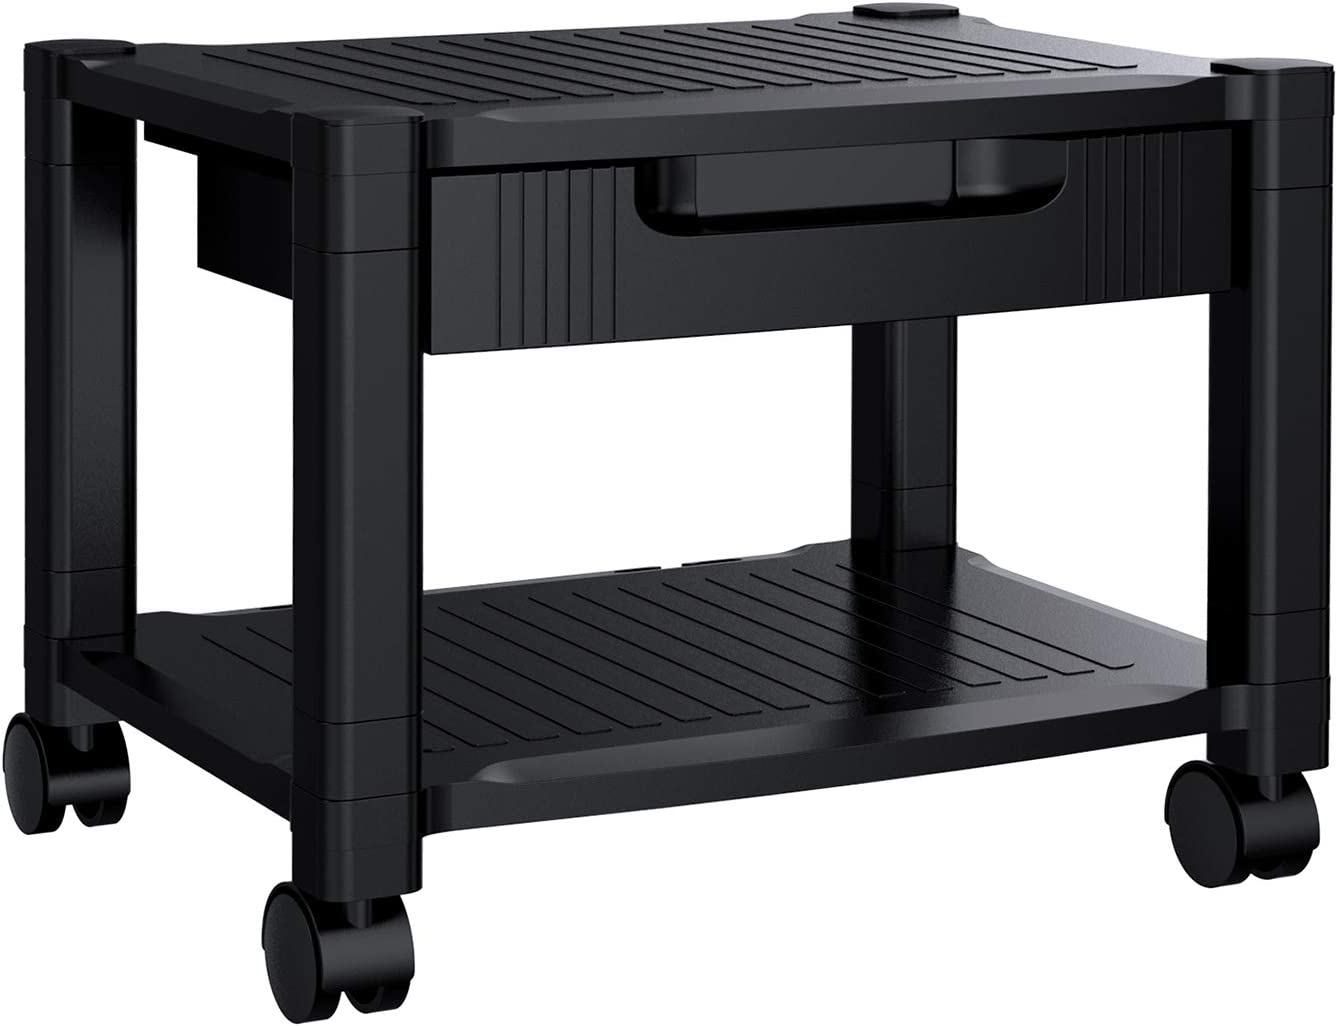 Printer Stand - Under Desk Printer Stand with Cable Management & Storage Drawers, Height Adjustable Printer Desk with 4 Wheels & Lock Mechanism for Mini 3D Printer by HUANUO : Office Products